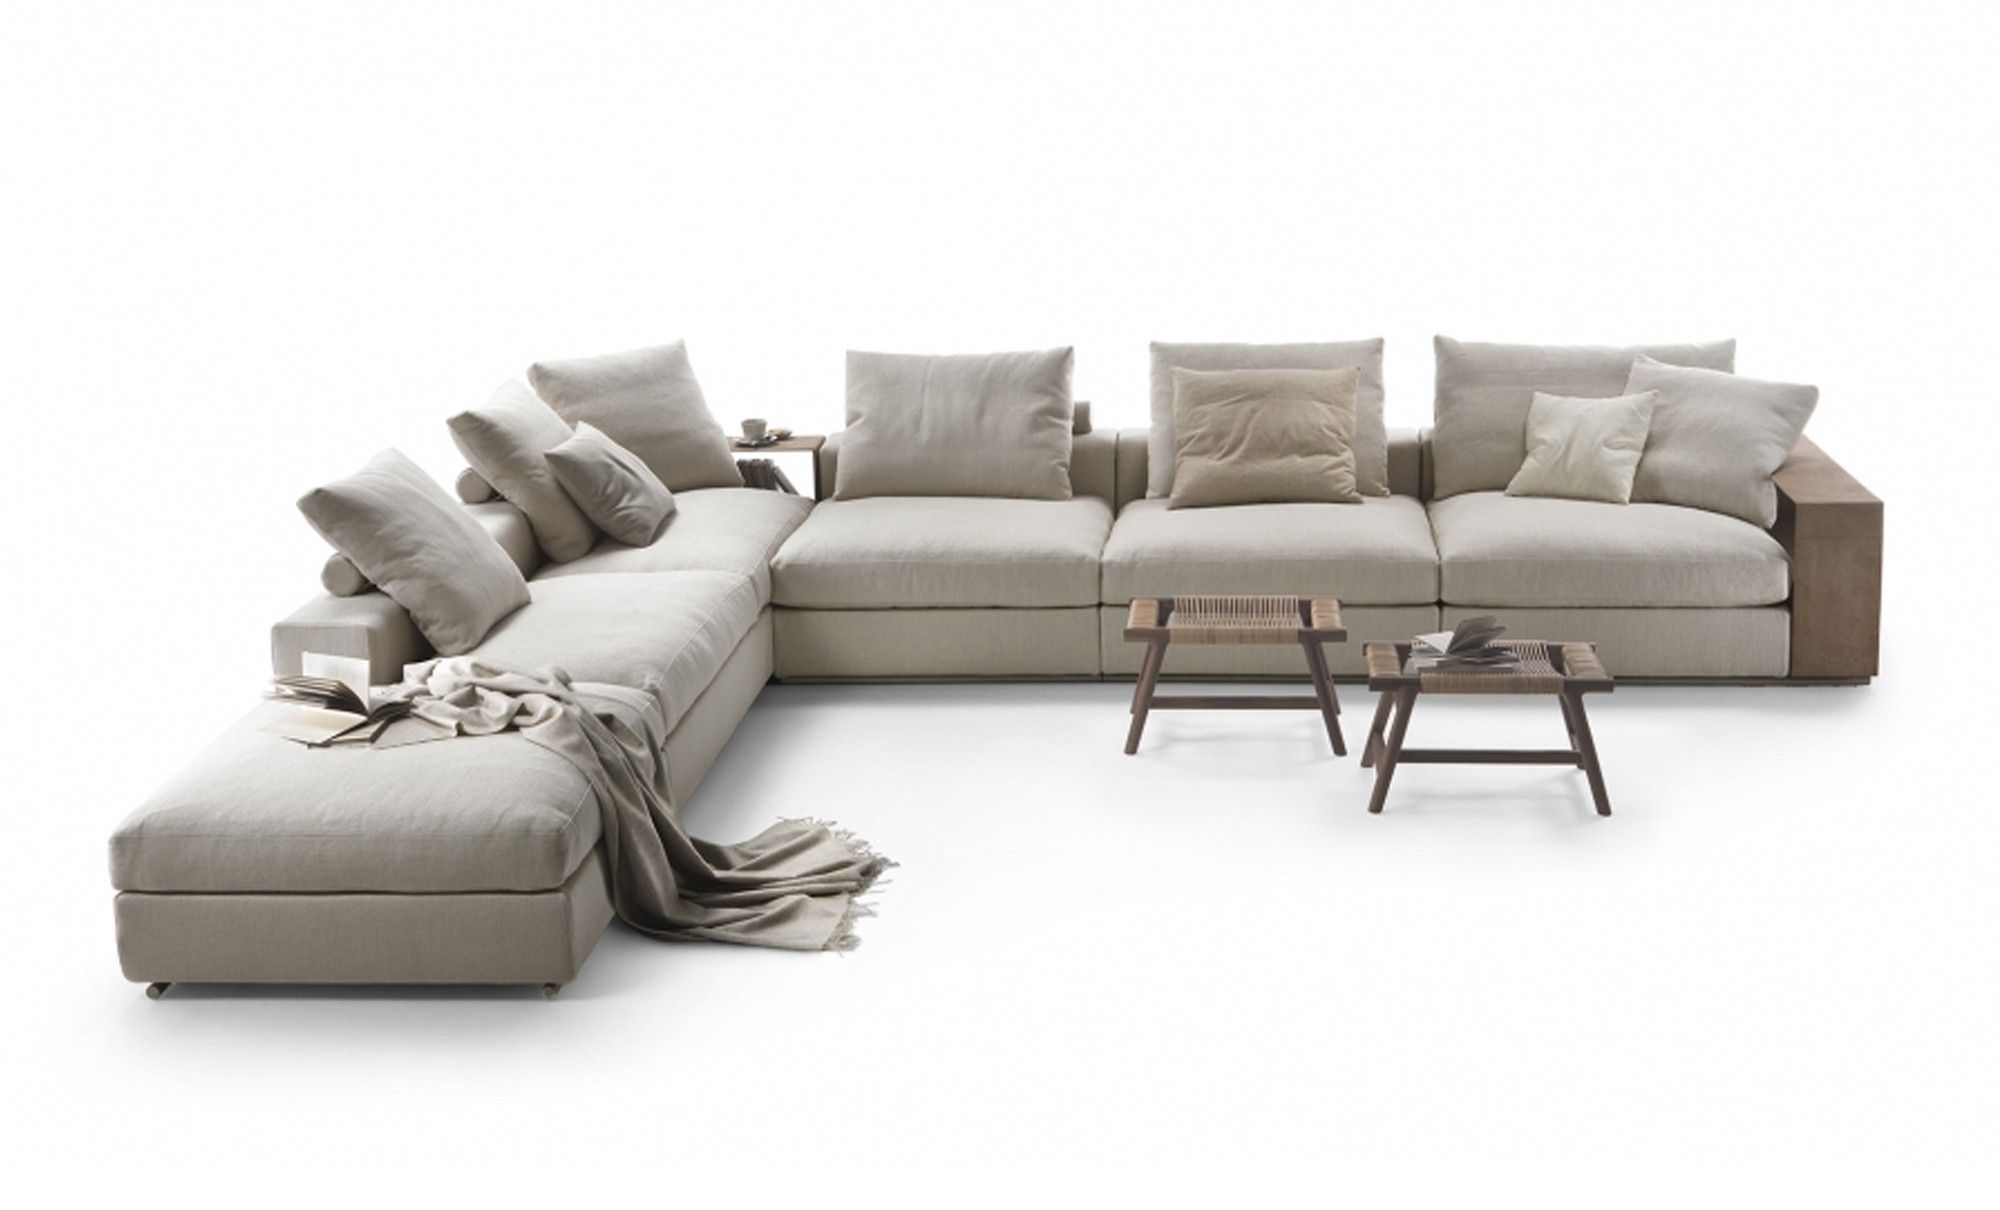 Furniture tufted chaise lounge with ottoman chaise lounge head